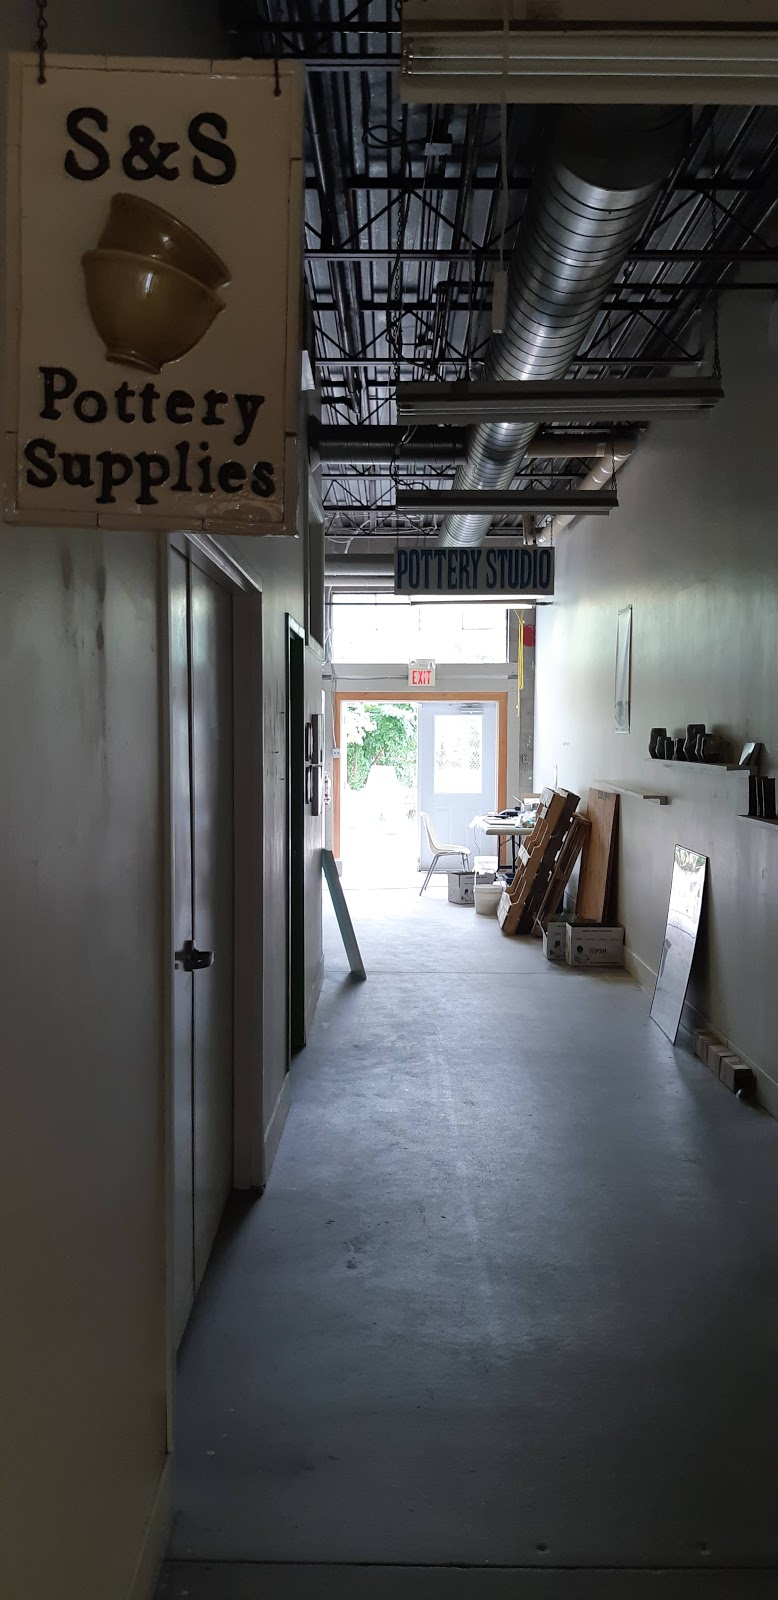 S & S Pottery Supplies | store | 141 Whitney Pl, Kitchener, ON N2G 2X8, Canada | 5197434252 OR +1 519-743-4252